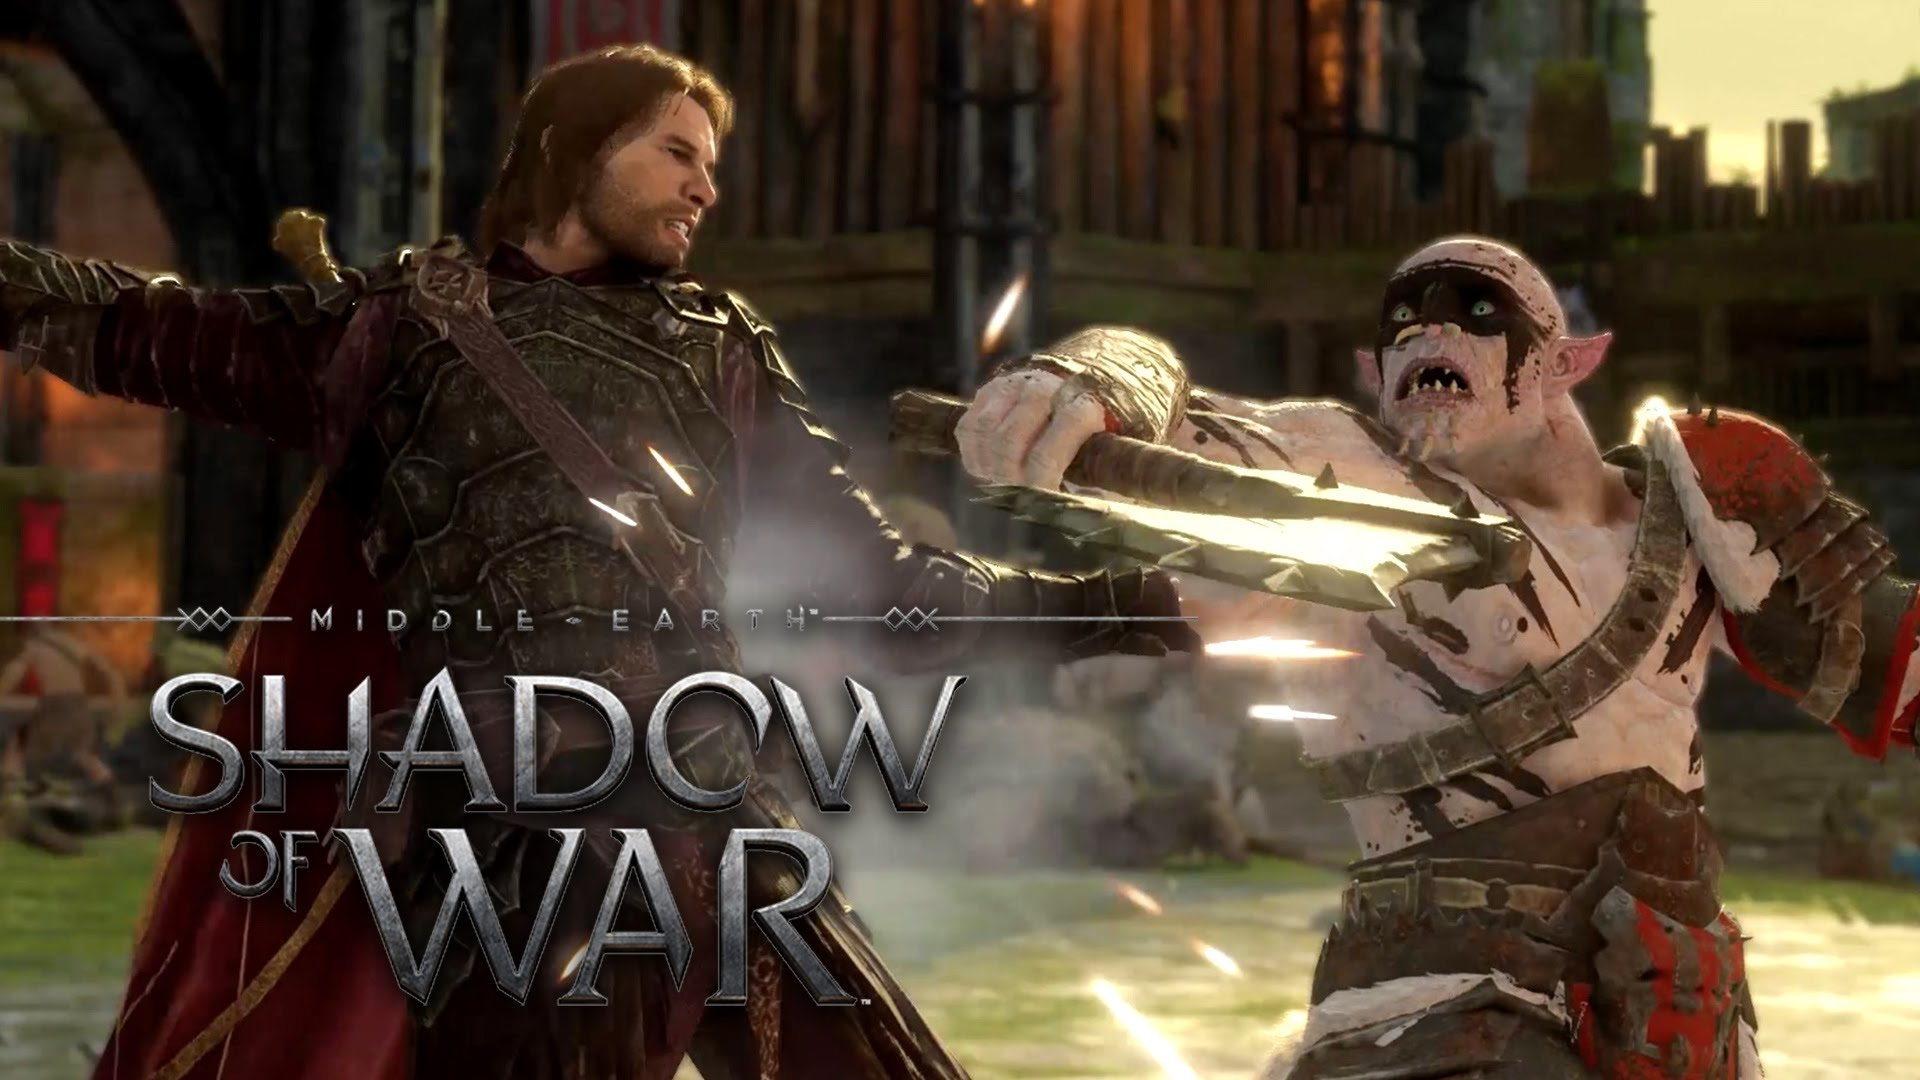 Middle-earth: Shadow of War Highly compressed + Crack PC Game Free Download